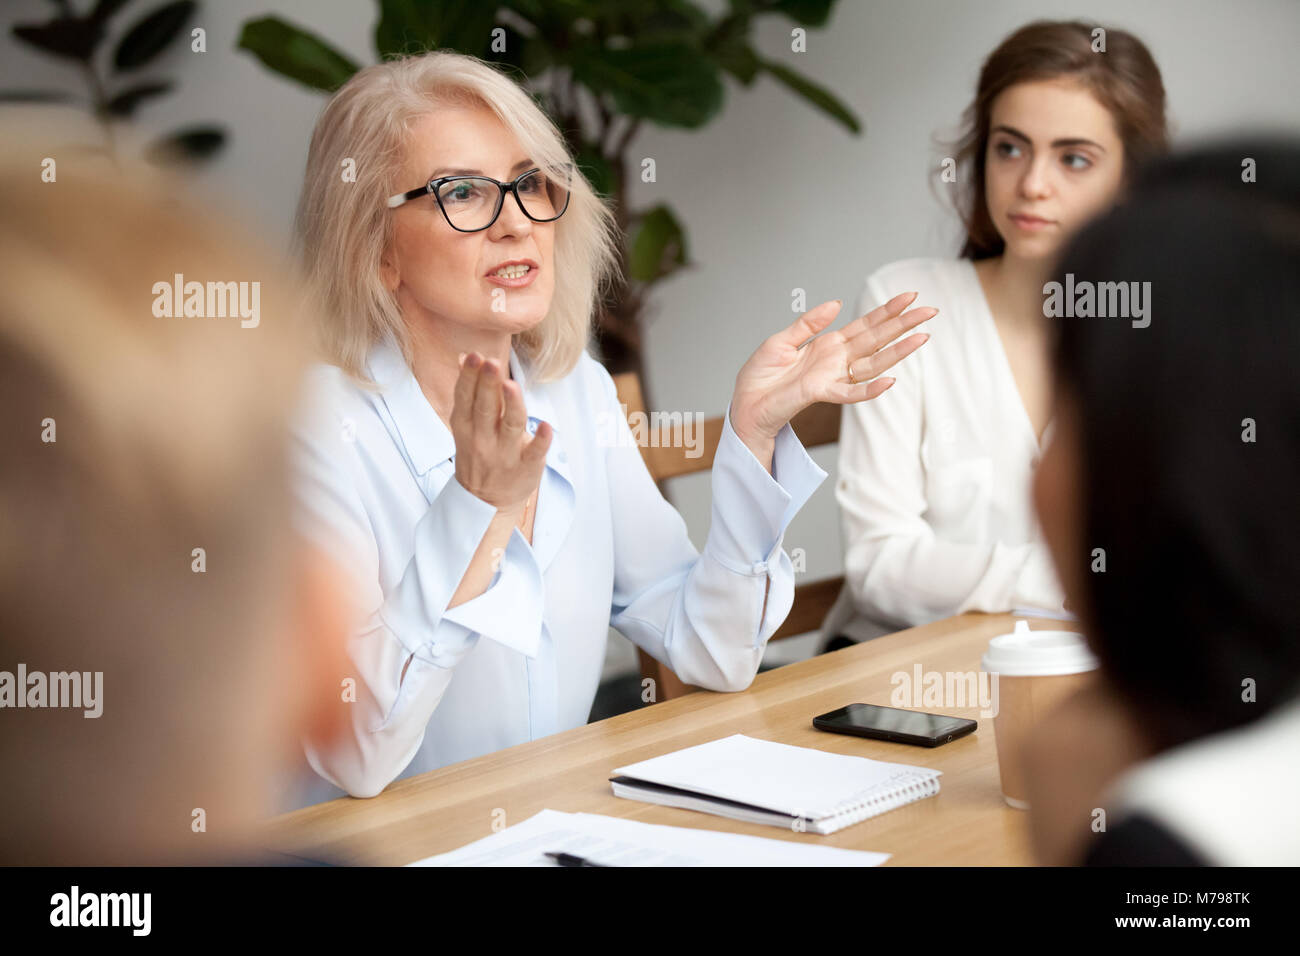 Aged businesswoman, teacher or business coach speaking to young  - Stock Image